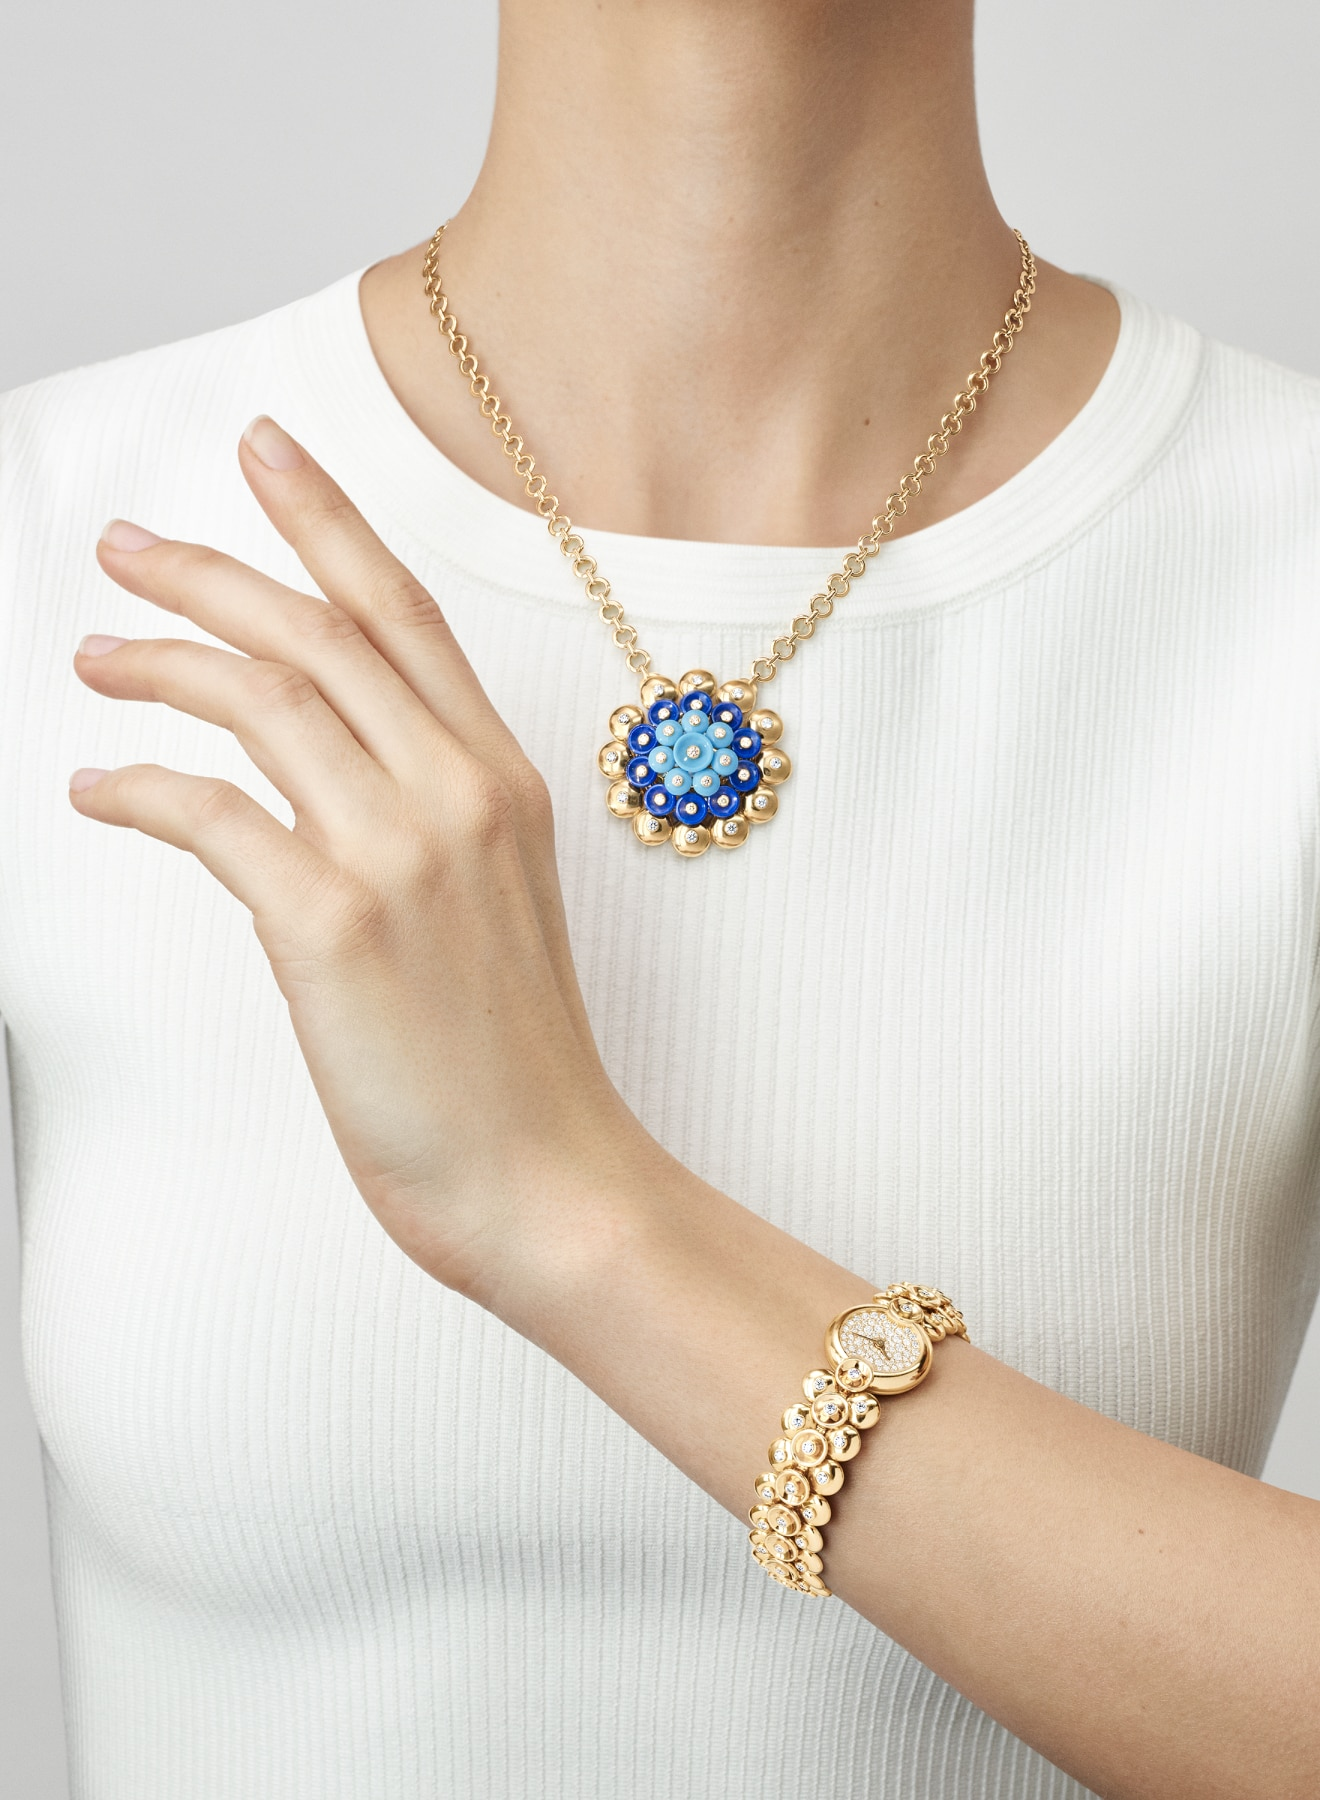 High Jewelry watches collection, watch and necklace, yellow gold and diamonds, hand pointing upwards, Van Cleef & Arpels